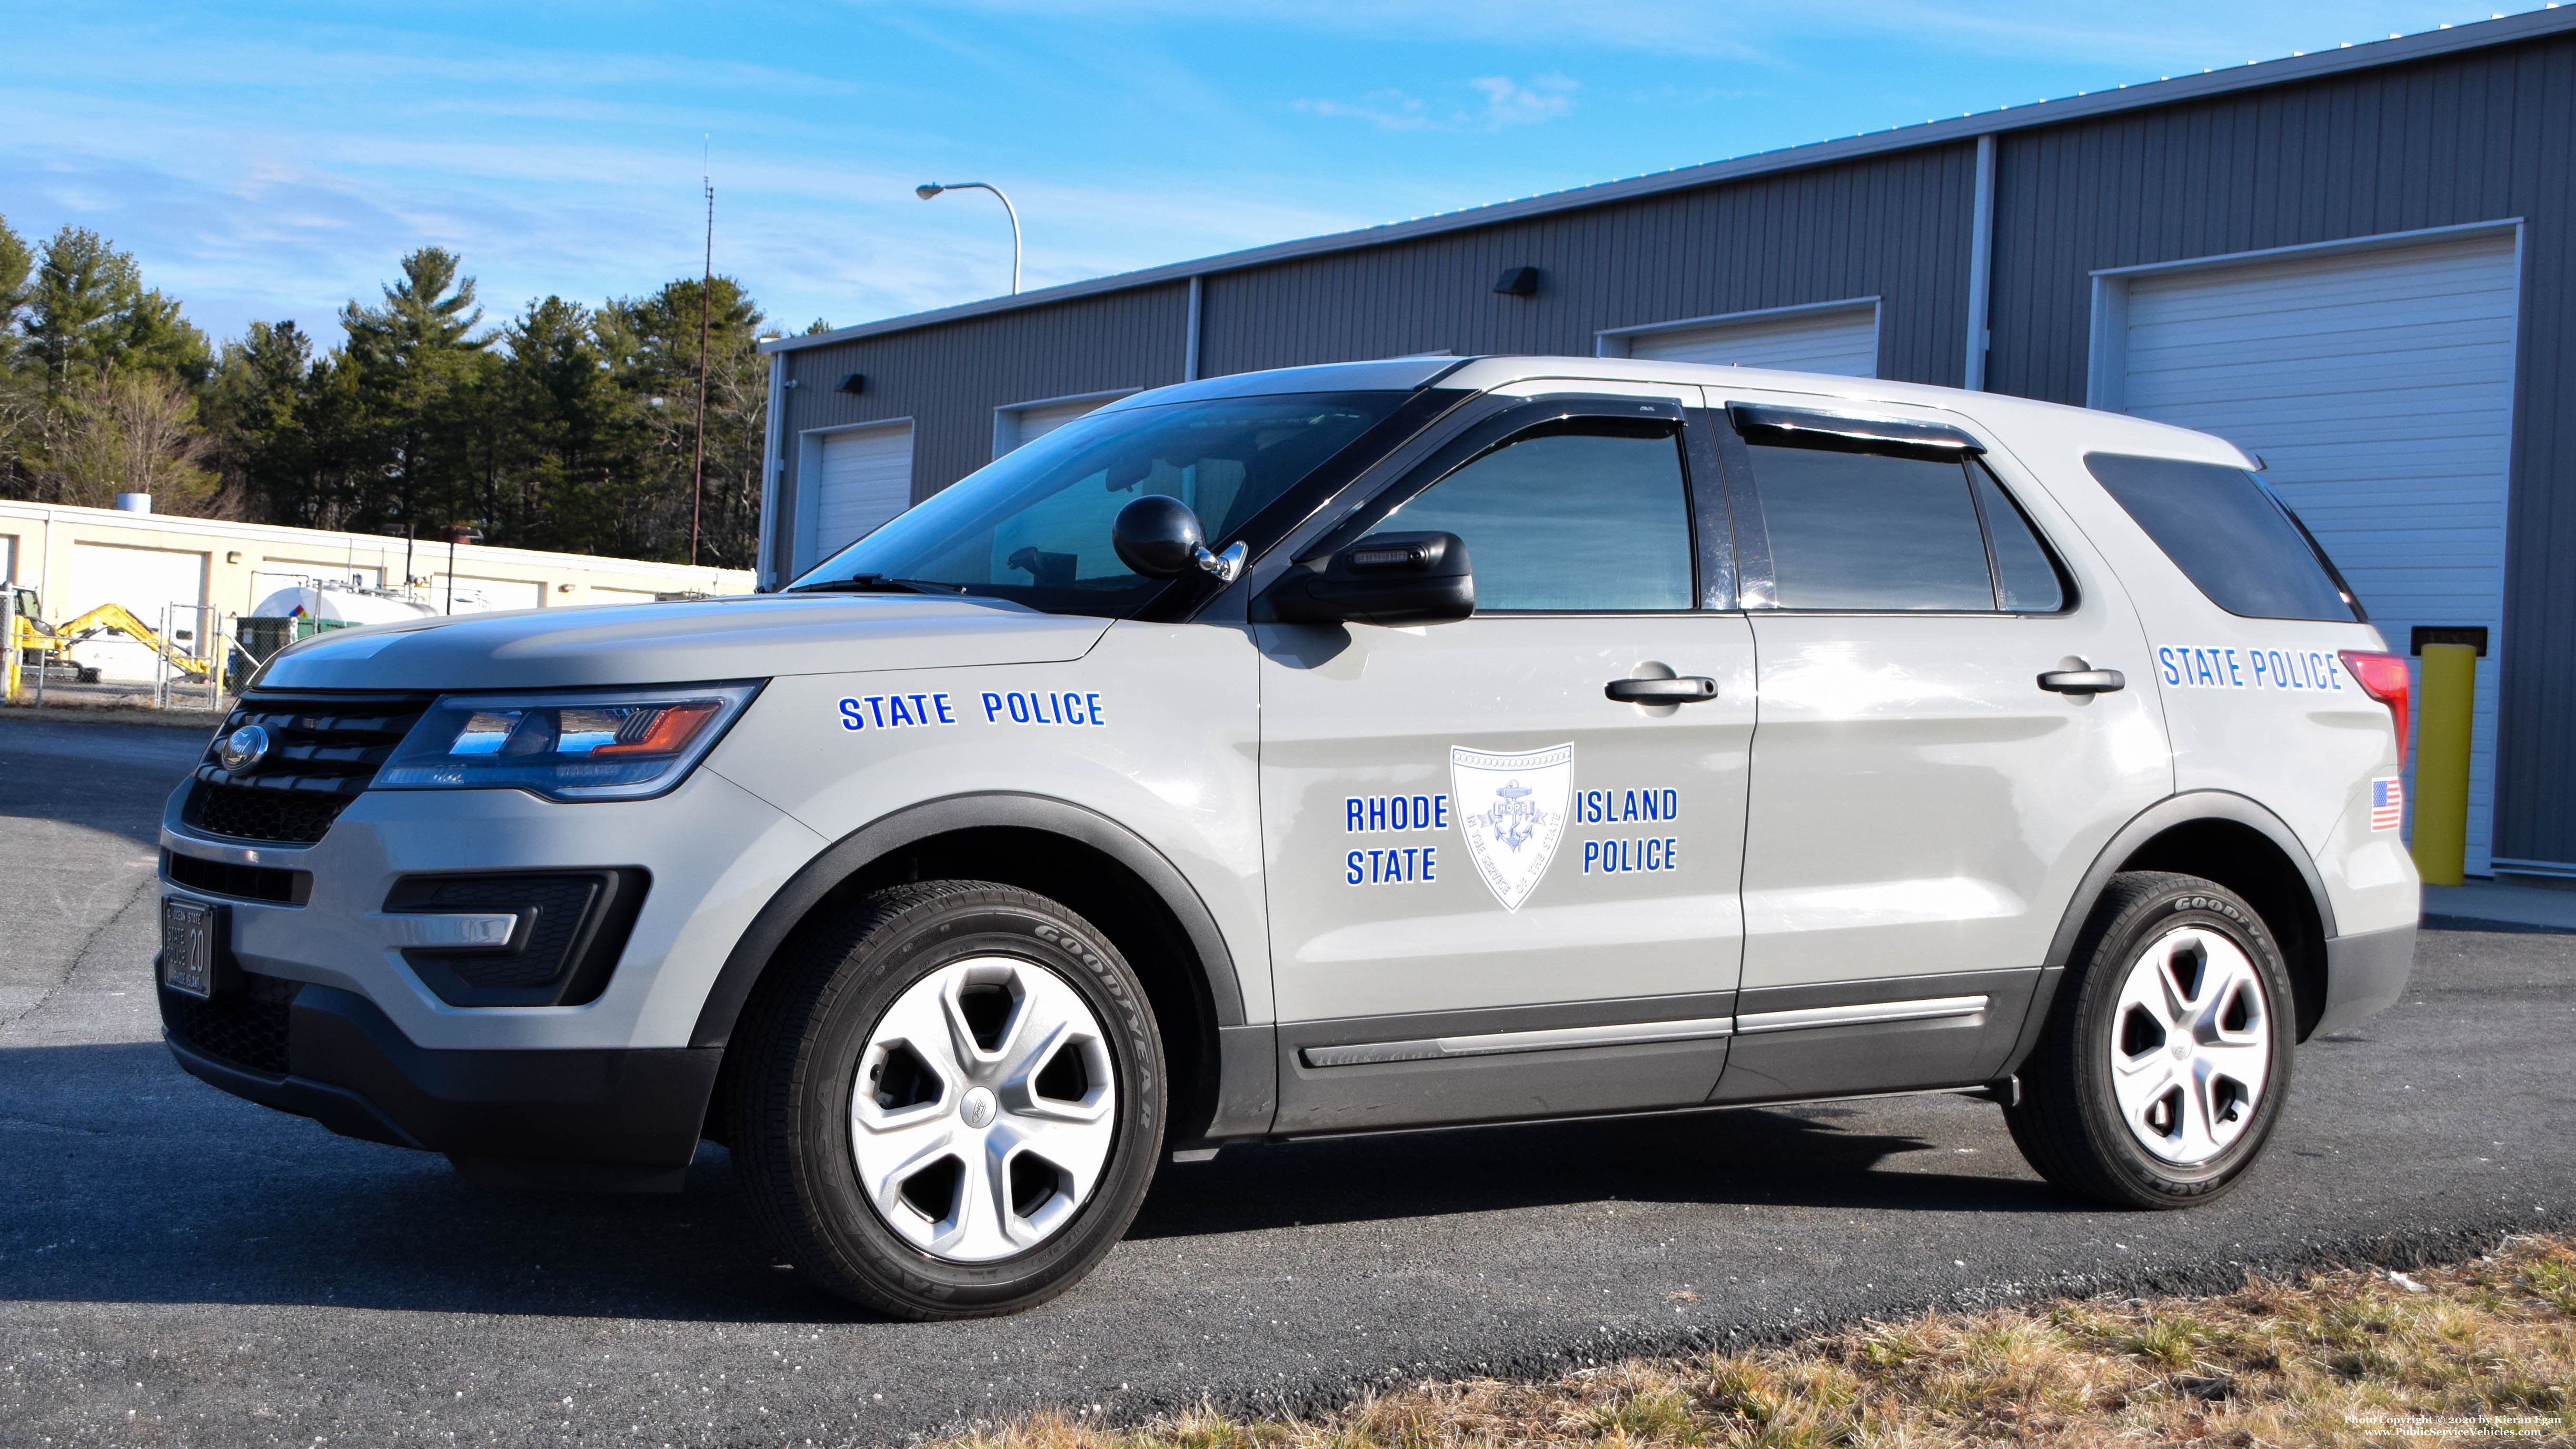 A photo  of Rhode Island State Police             Cruiser 20, a 2017 Ford Police Interceptor Utility             taken by Kieran Egan